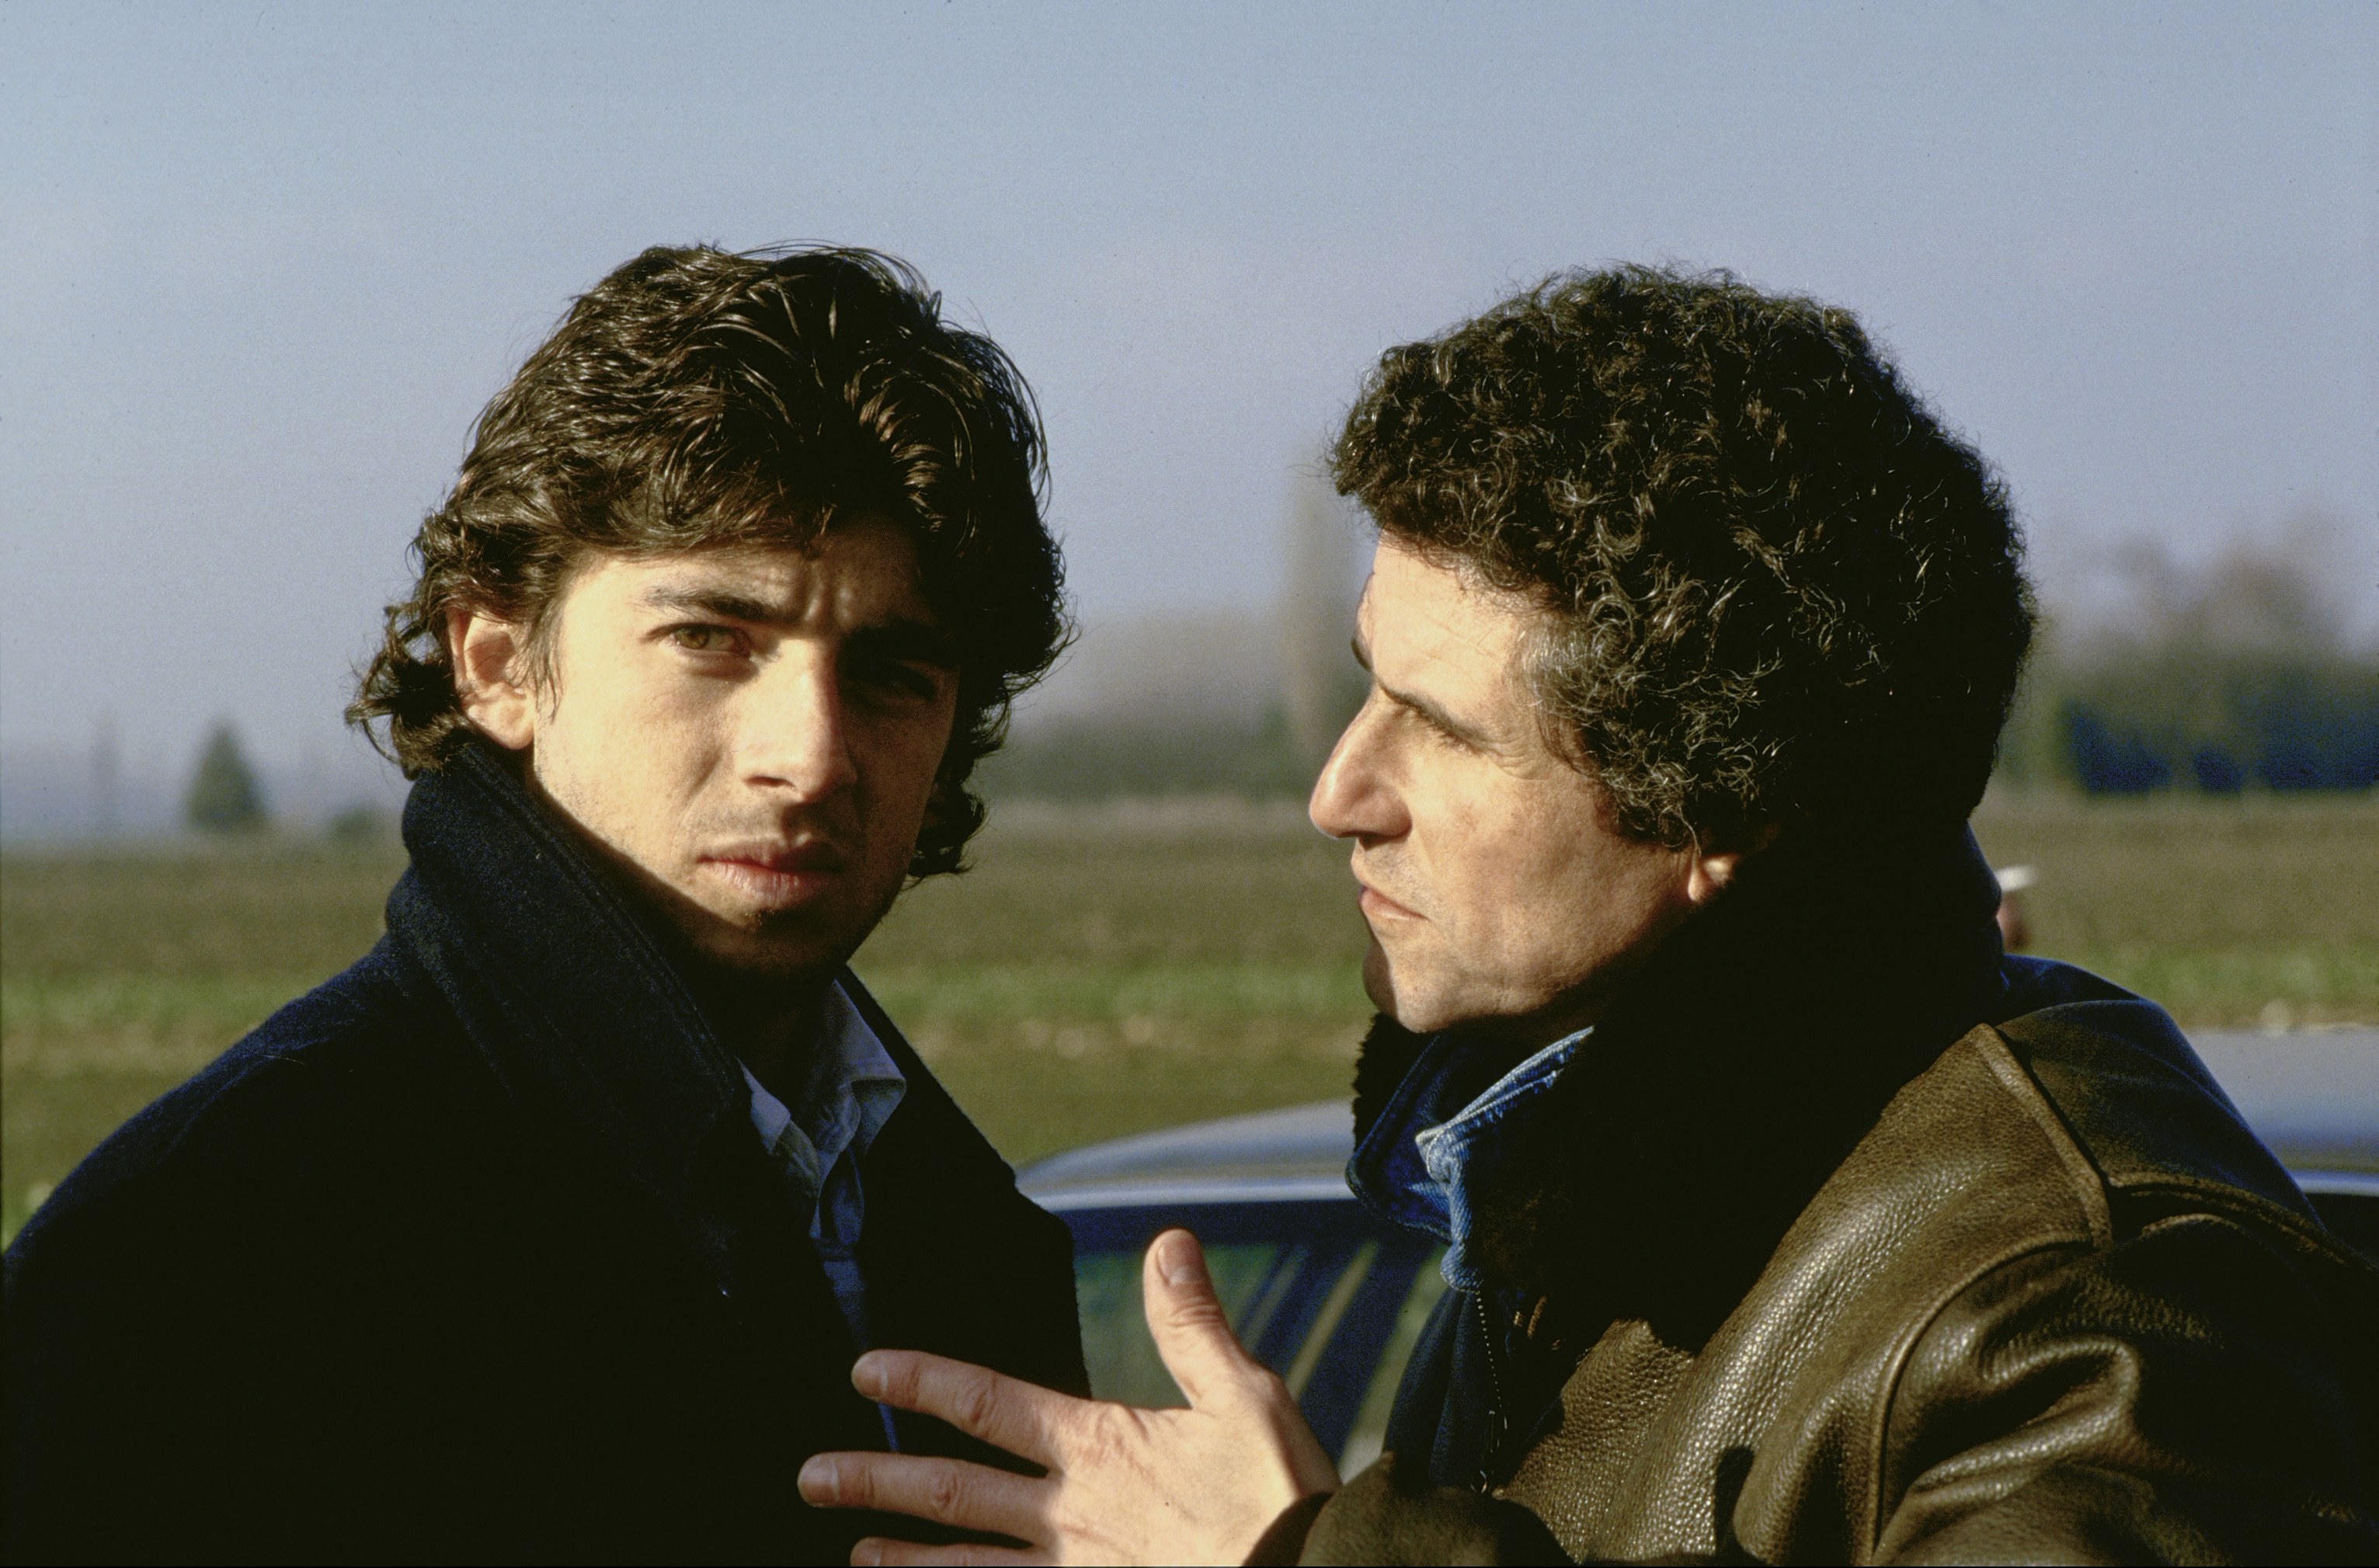 Patrick Bruel and Claude Lelouch in Attention bandits! (1986)